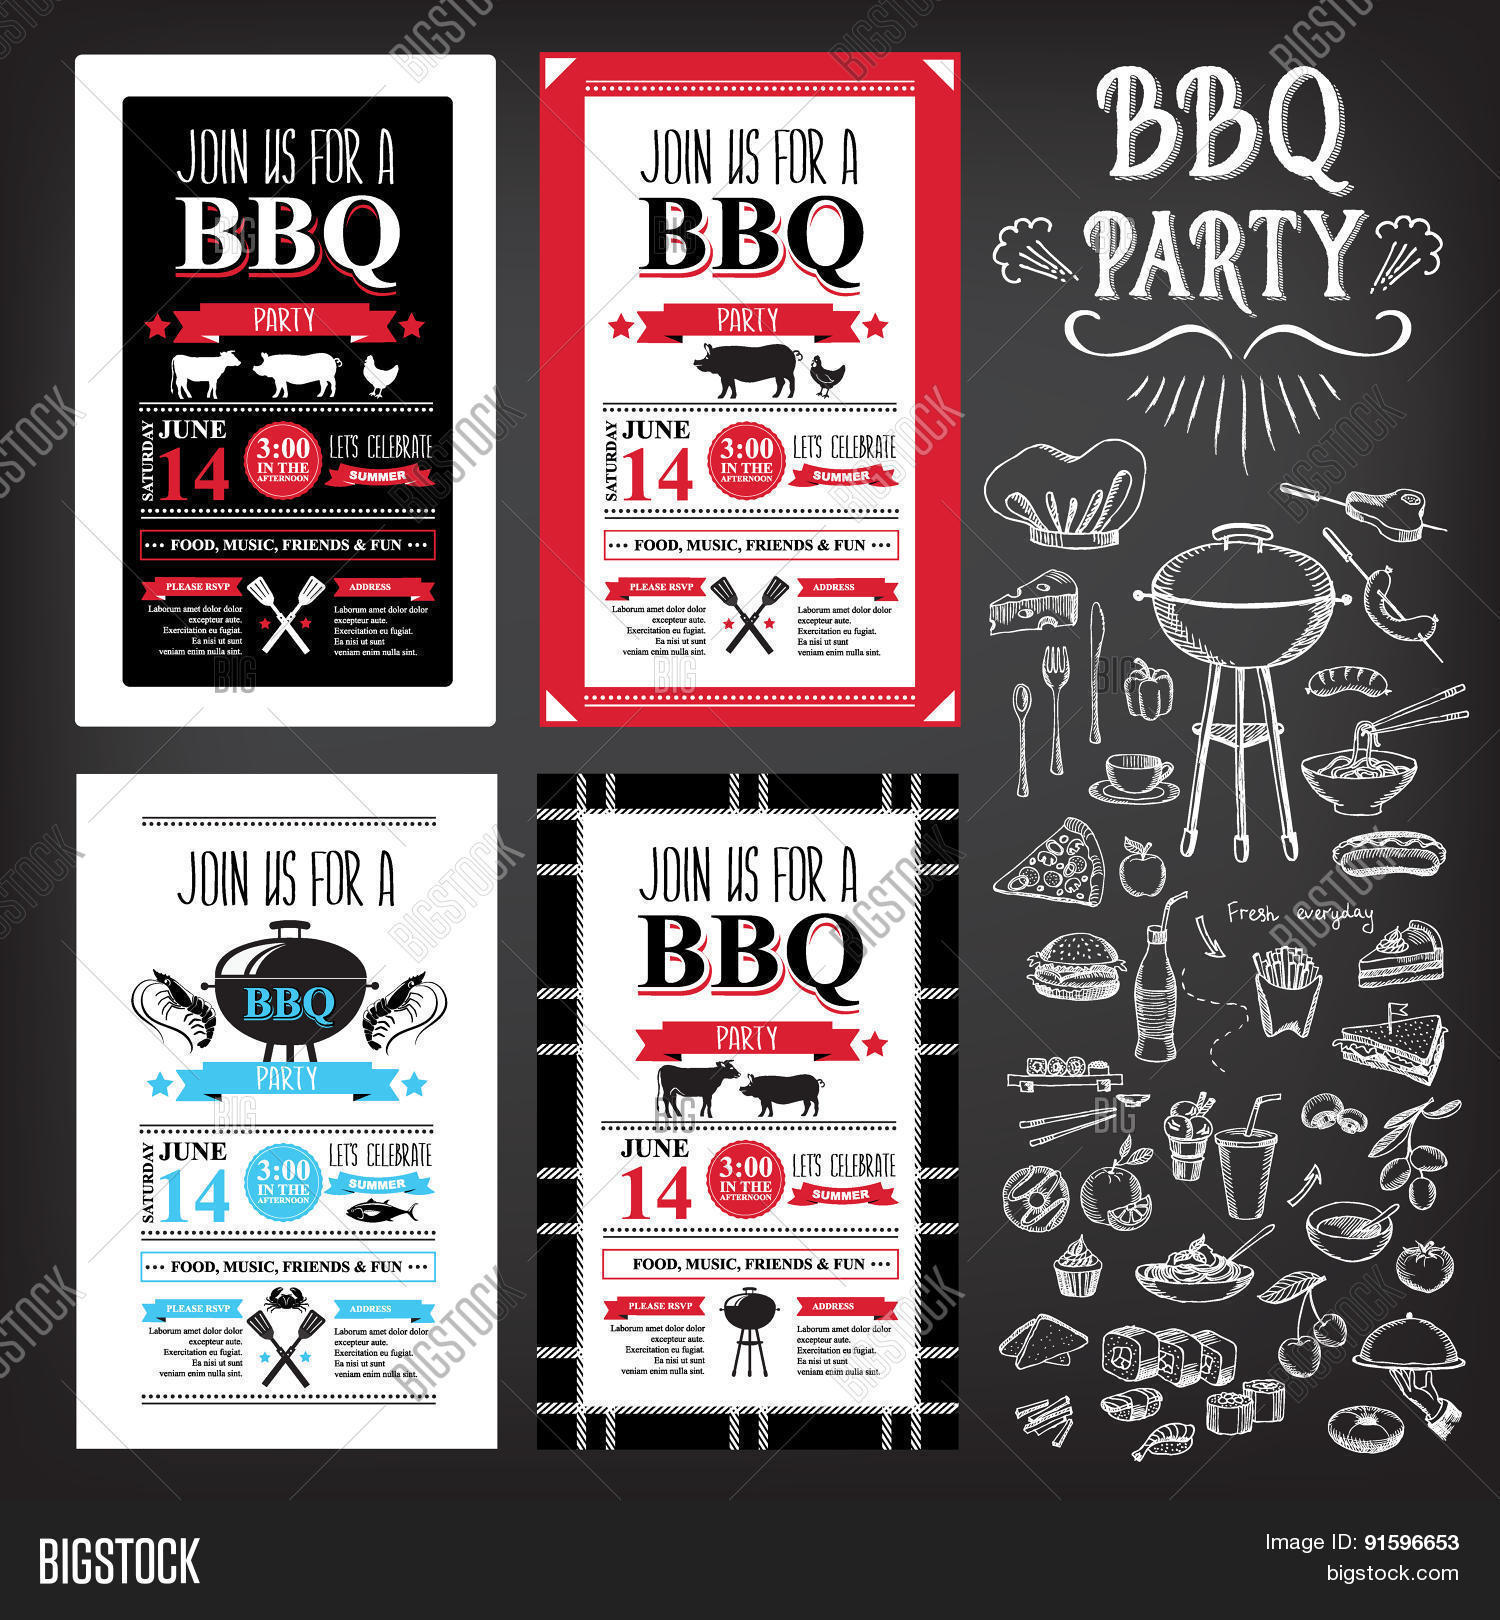 barbecue party invitation bbq template menu design food flyer stock vector stock photos. Black Bedroom Furniture Sets. Home Design Ideas